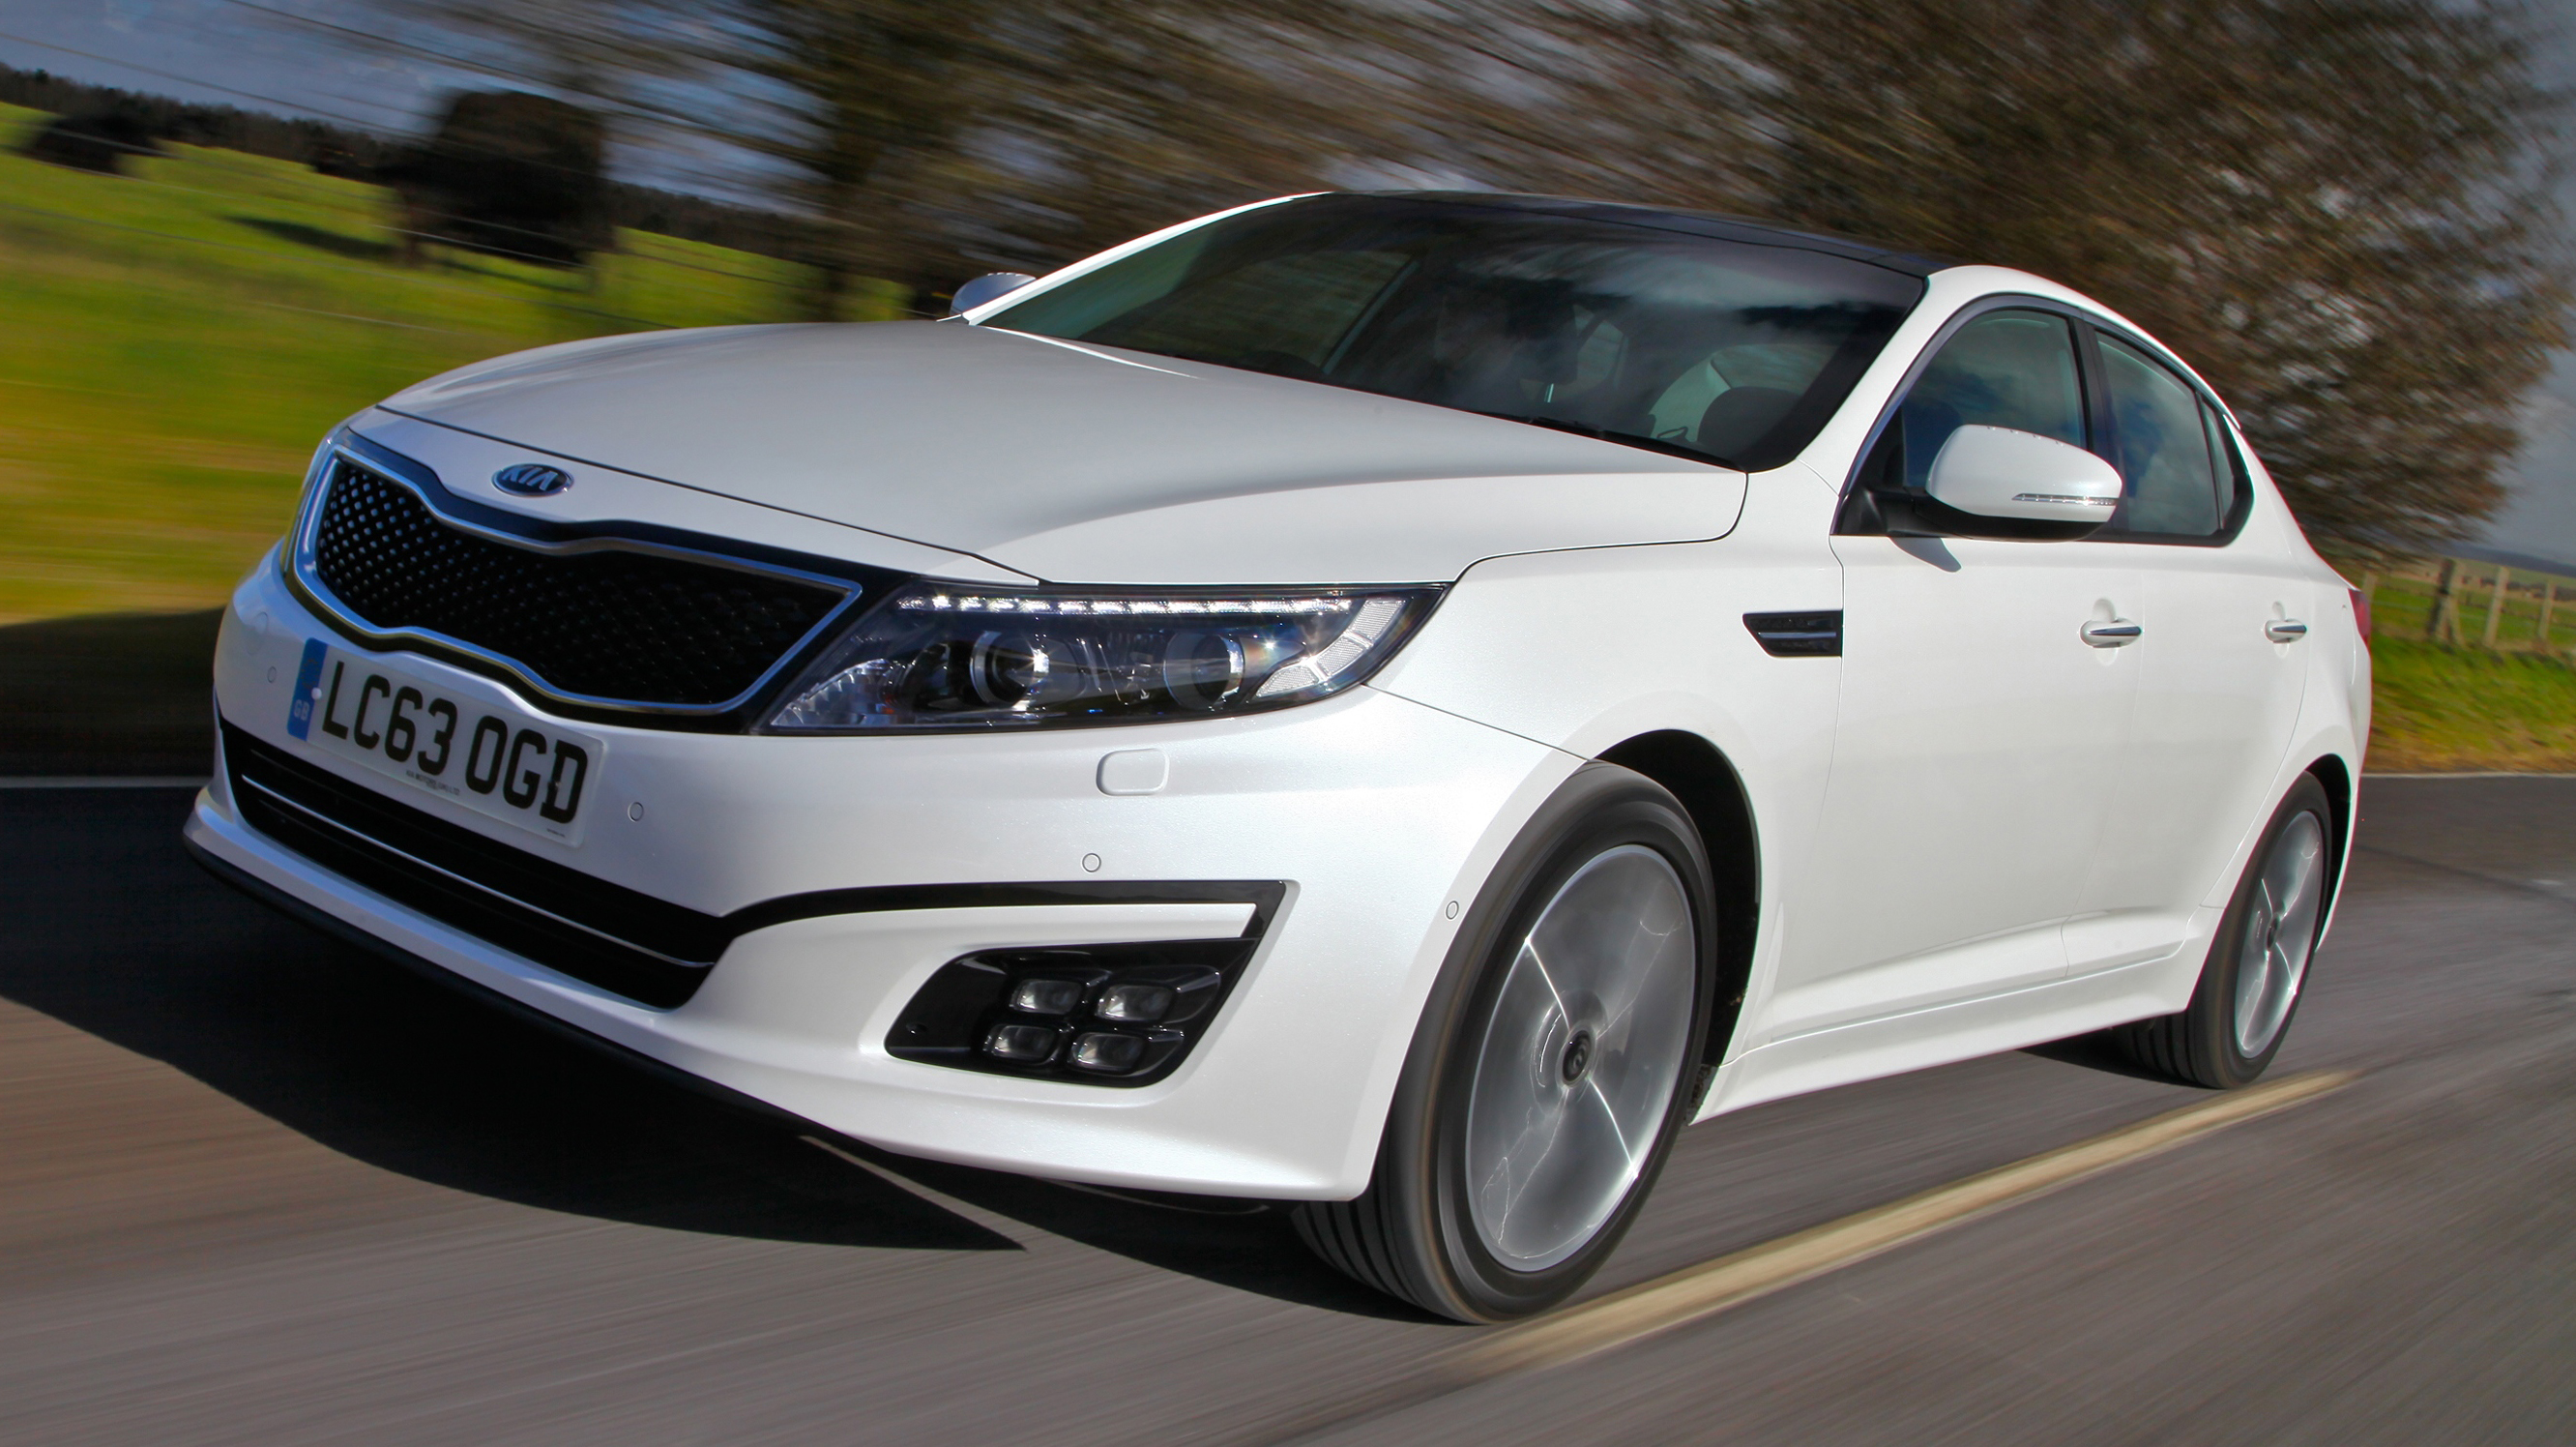 kia technical options family to kiaoptima ex specifications bought of optima be other vehicle new gdi location car luxury ments features overview